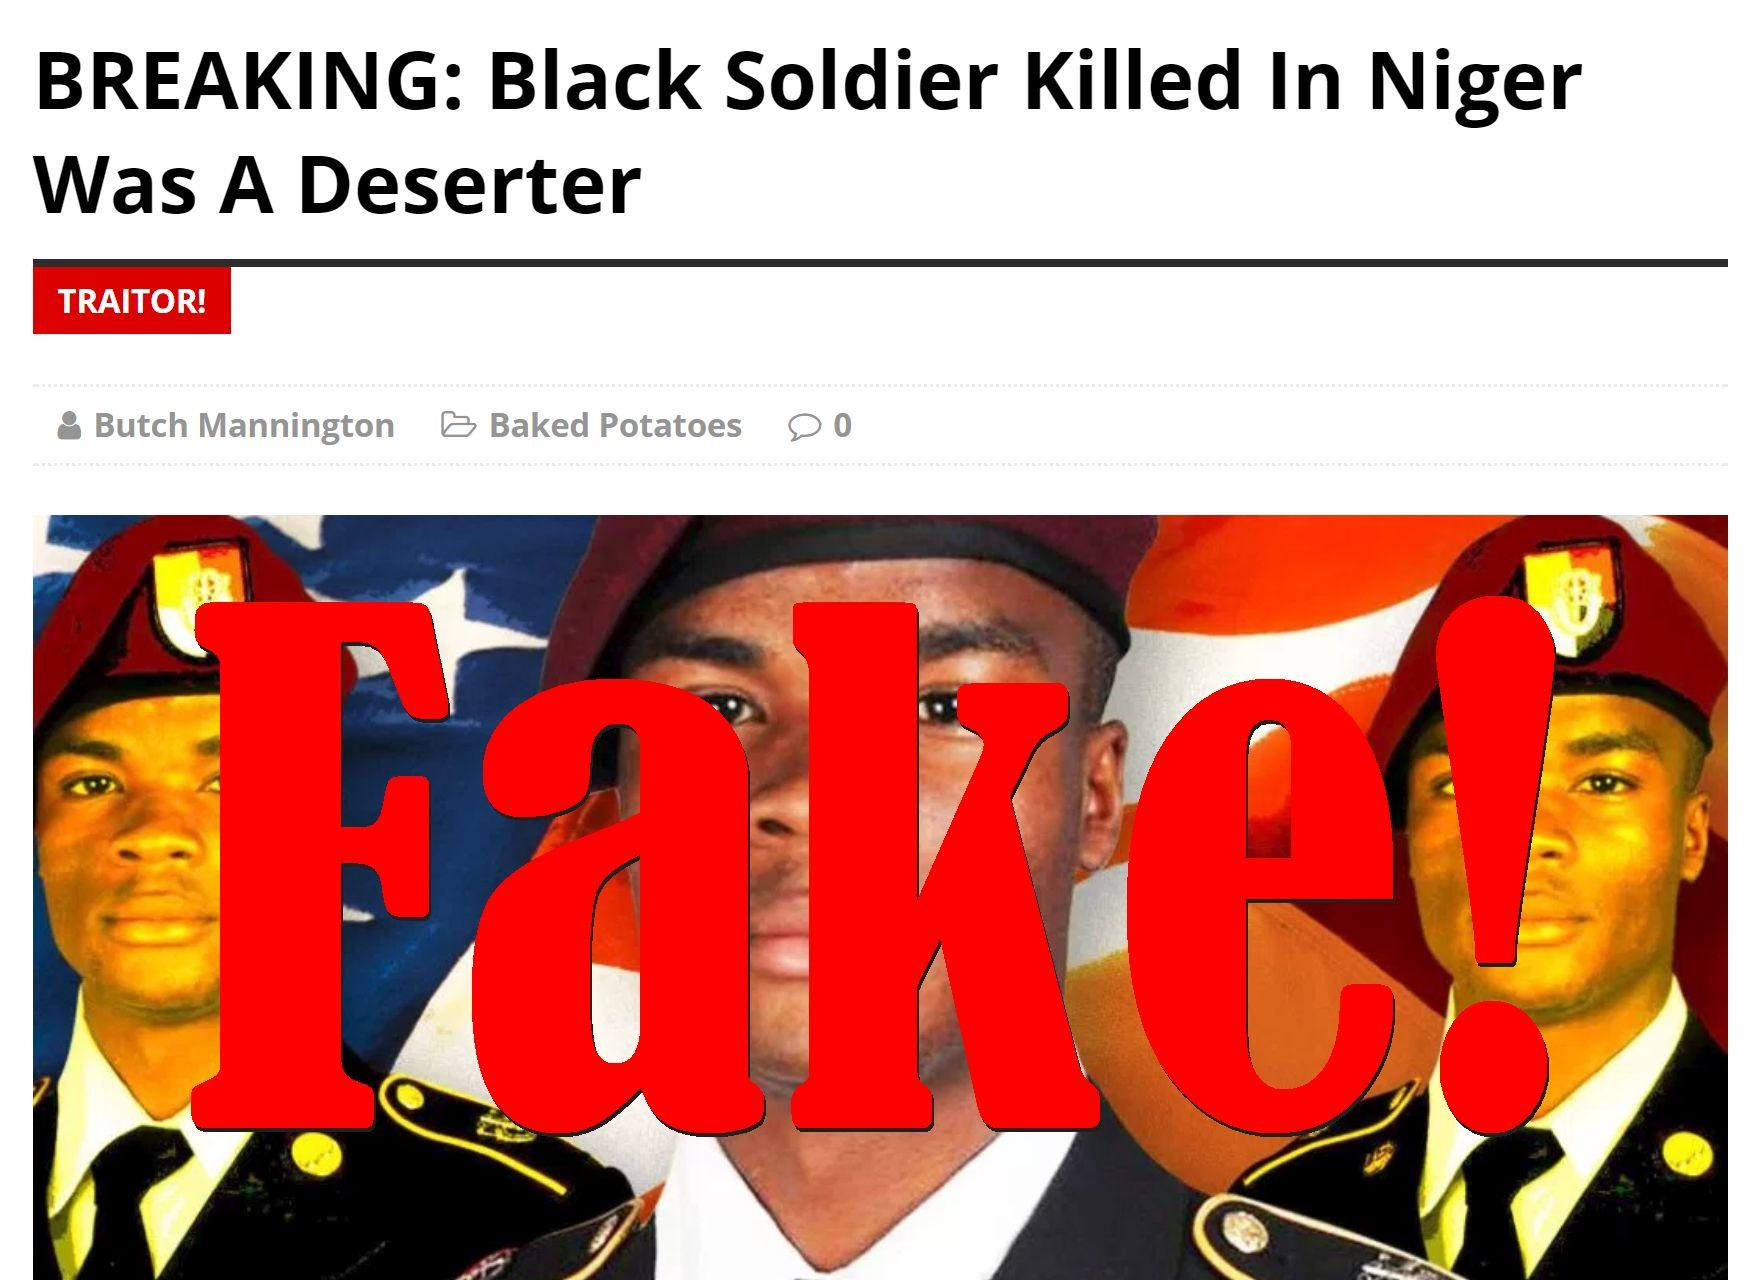 Fake News: Black Soldier Killed In Niger Was NOT A Deserter